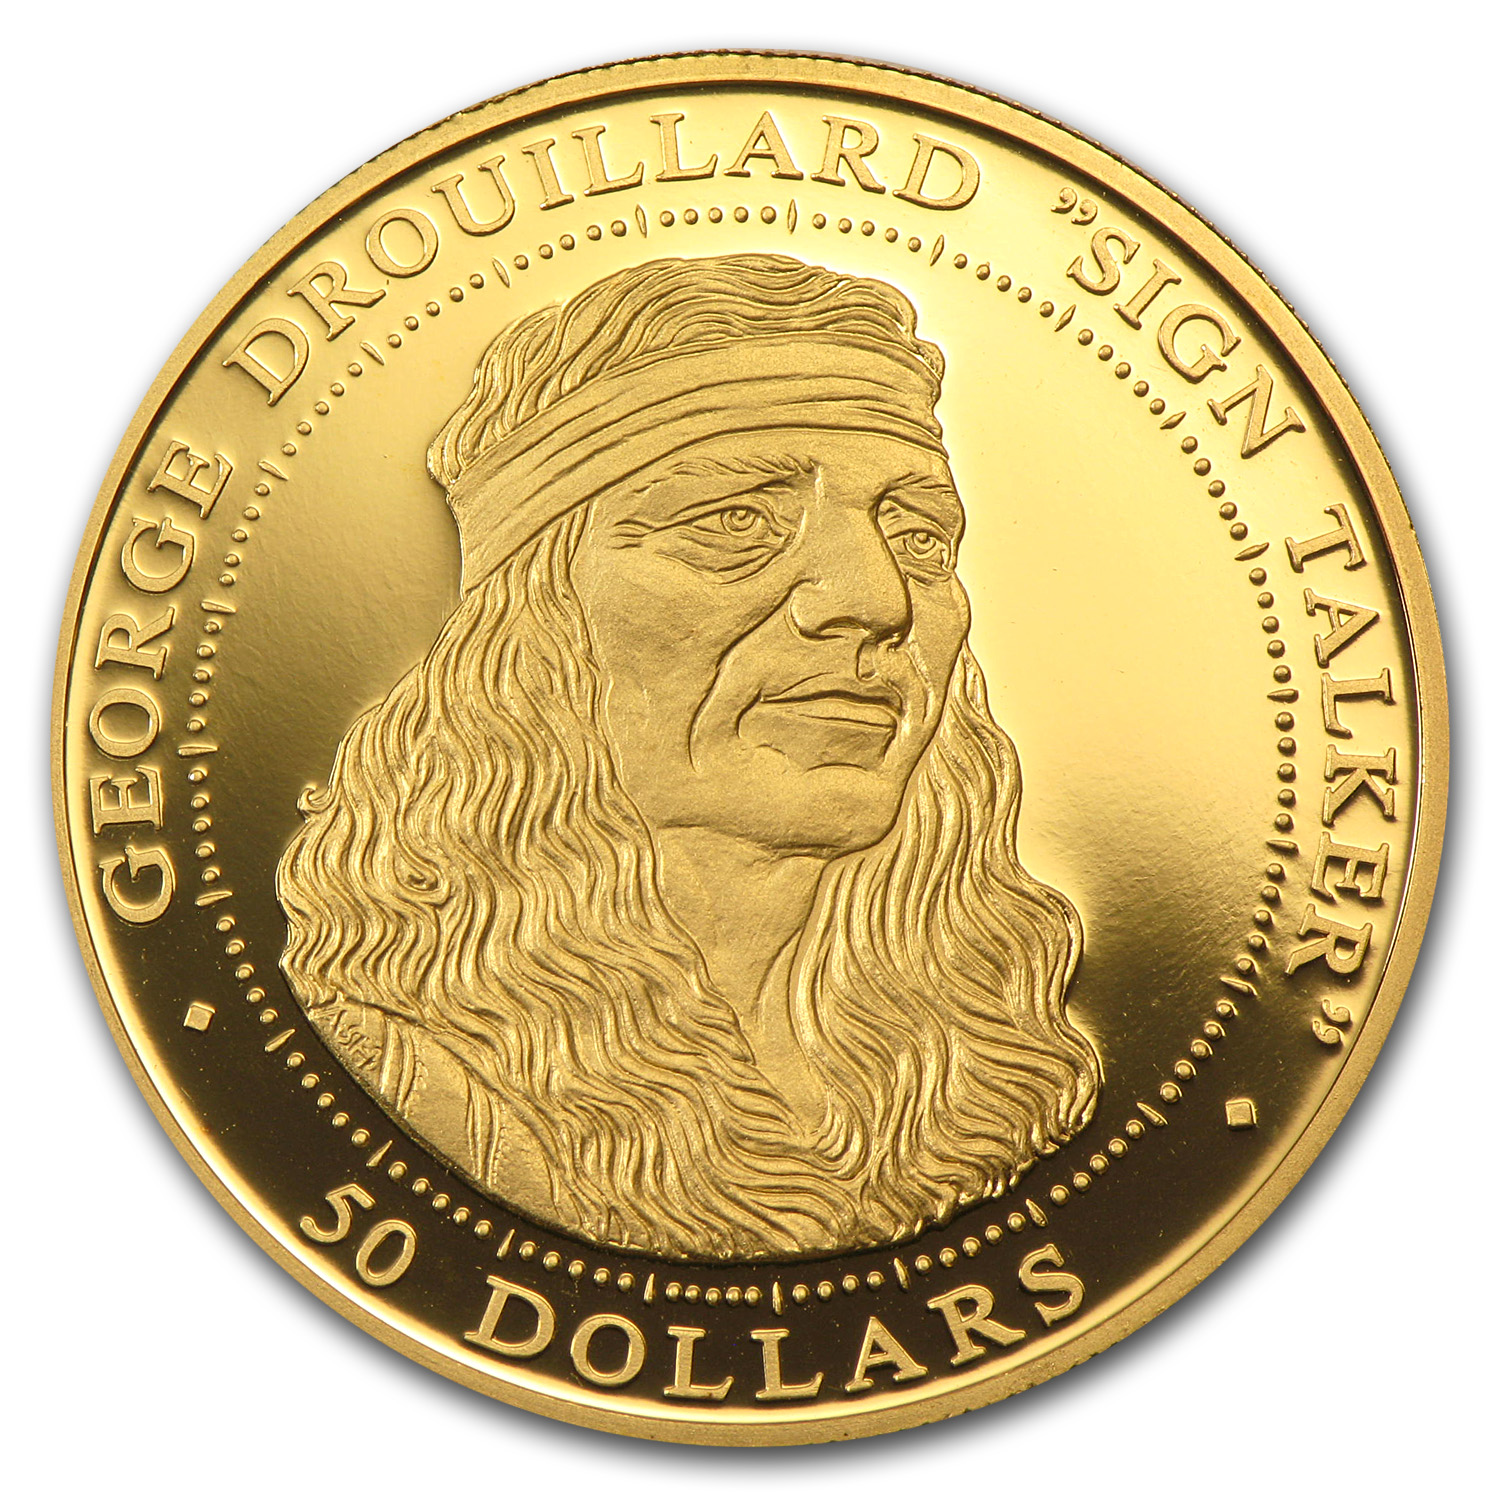 1/2 oz Gold Round - $50 Shawnee Indian Drouillard